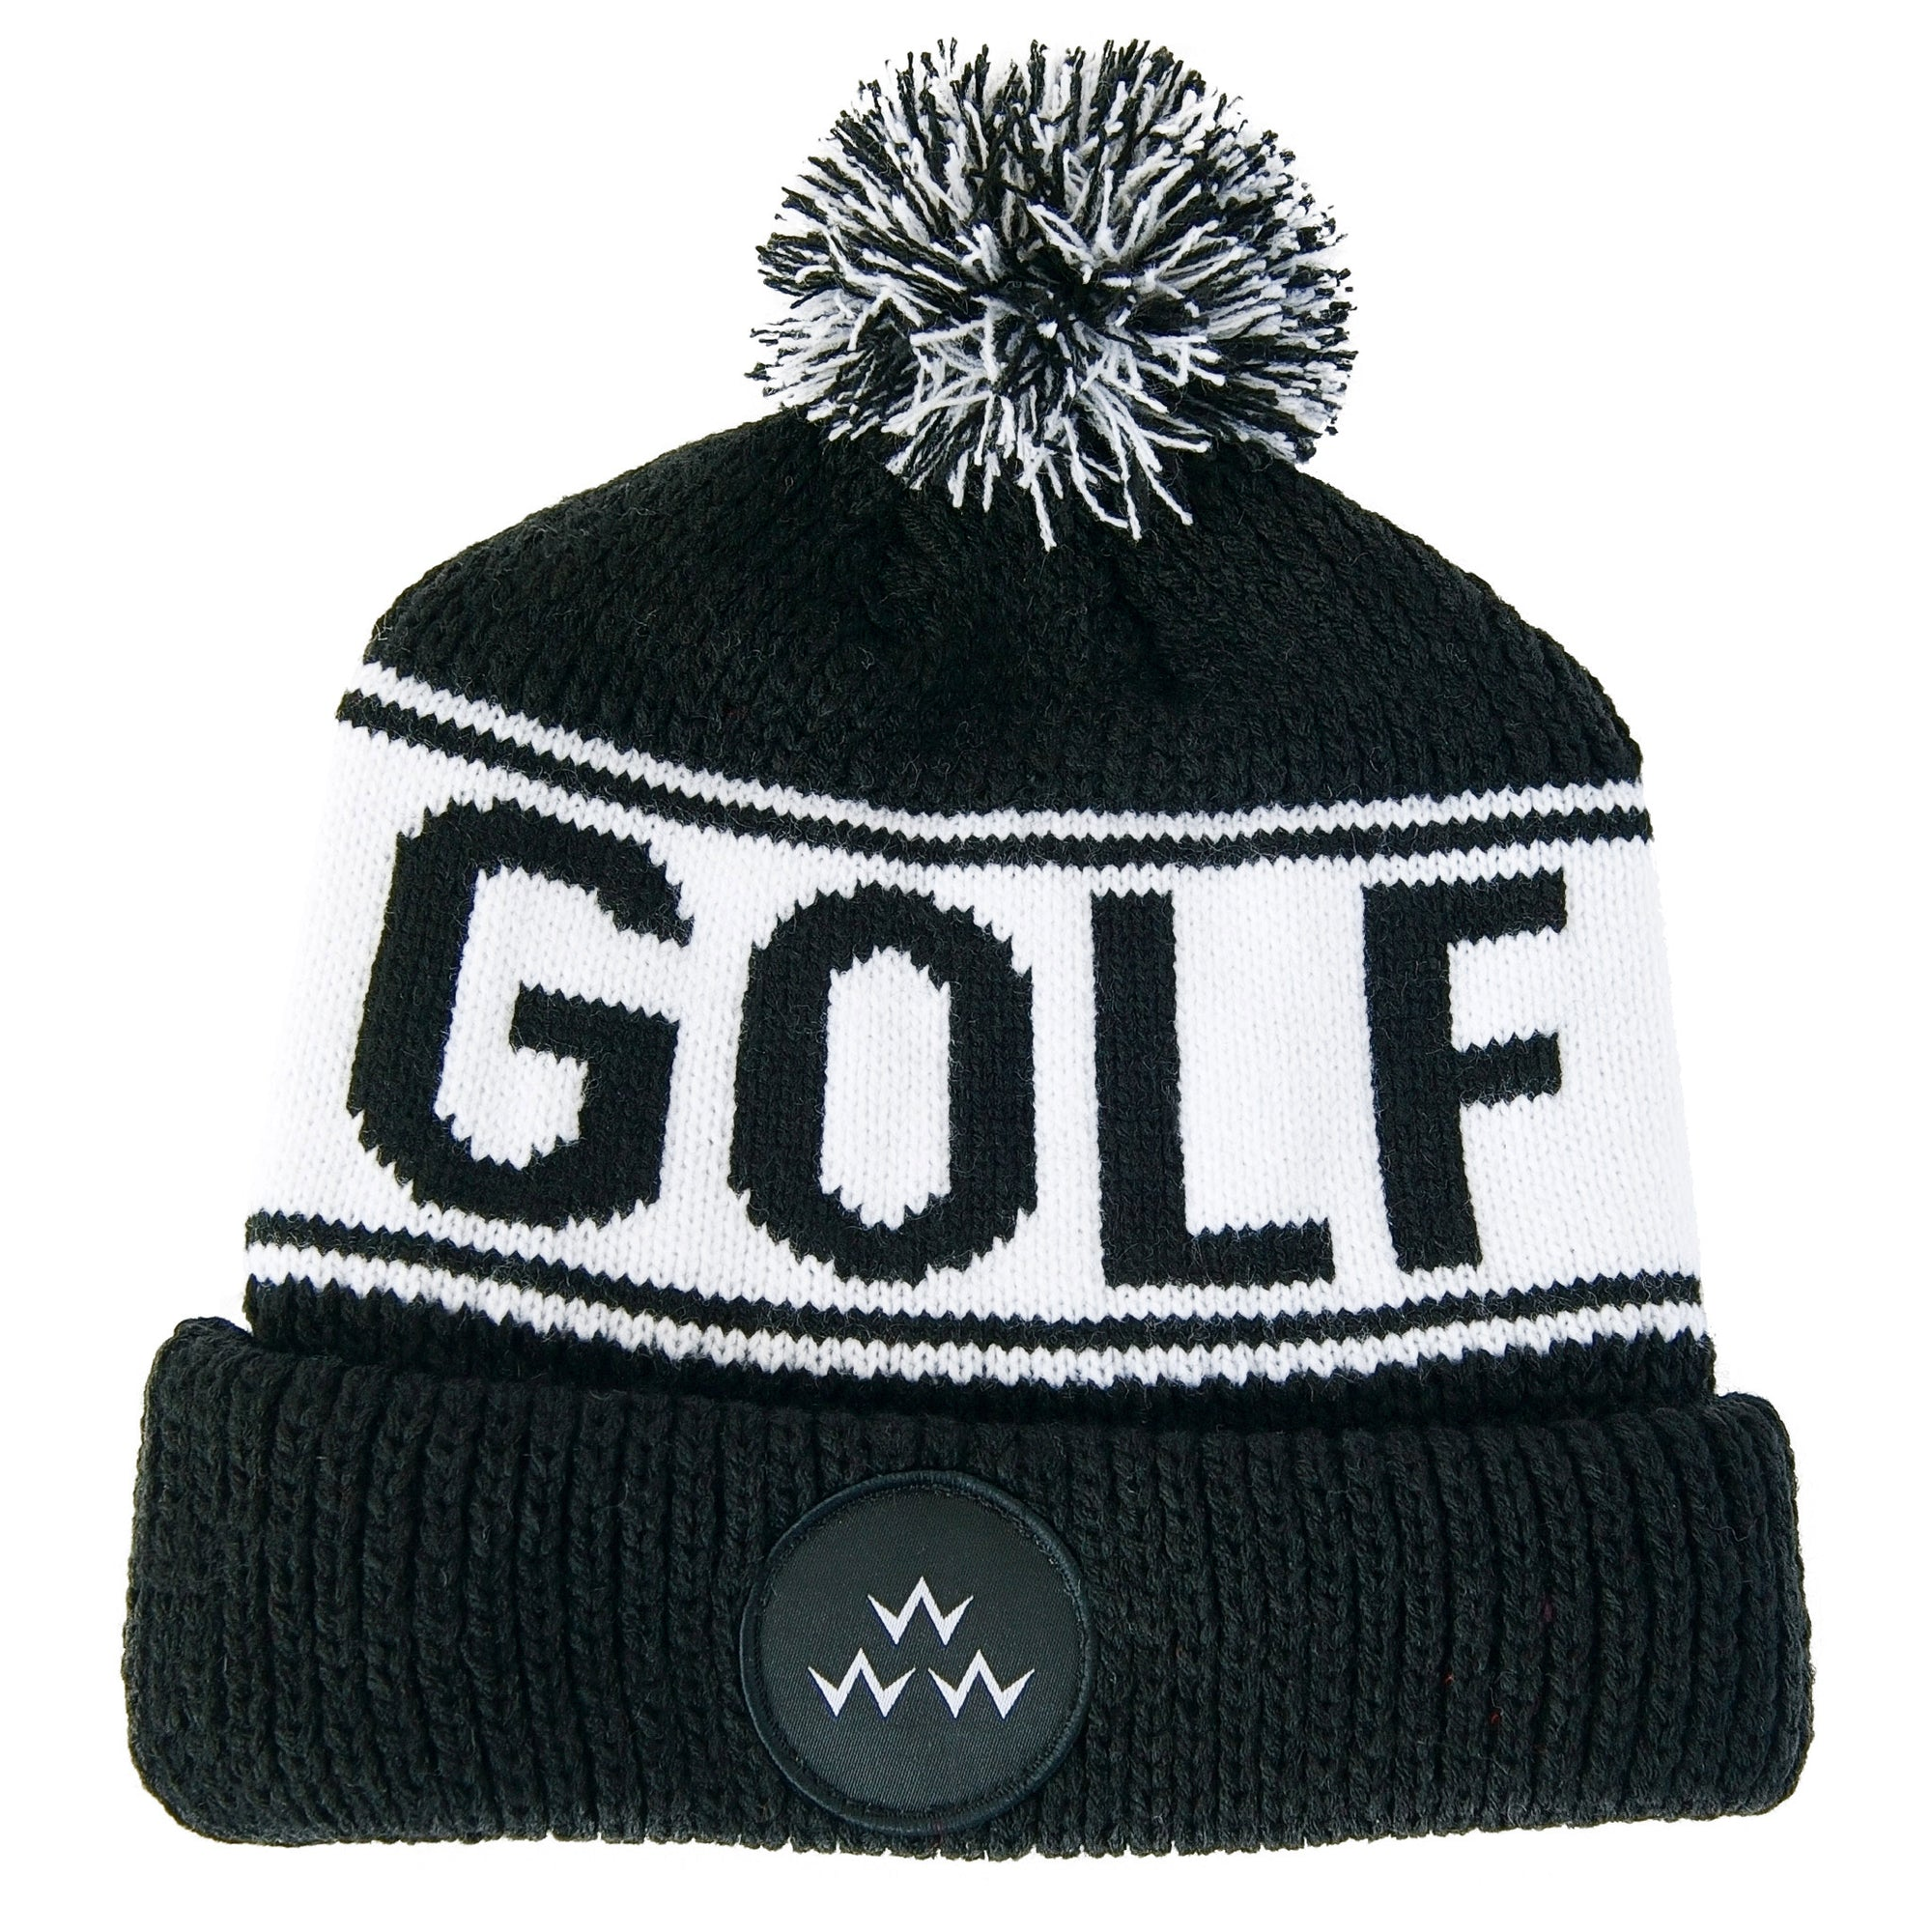 birds-of-condor-black-golf-beanie-hat-front